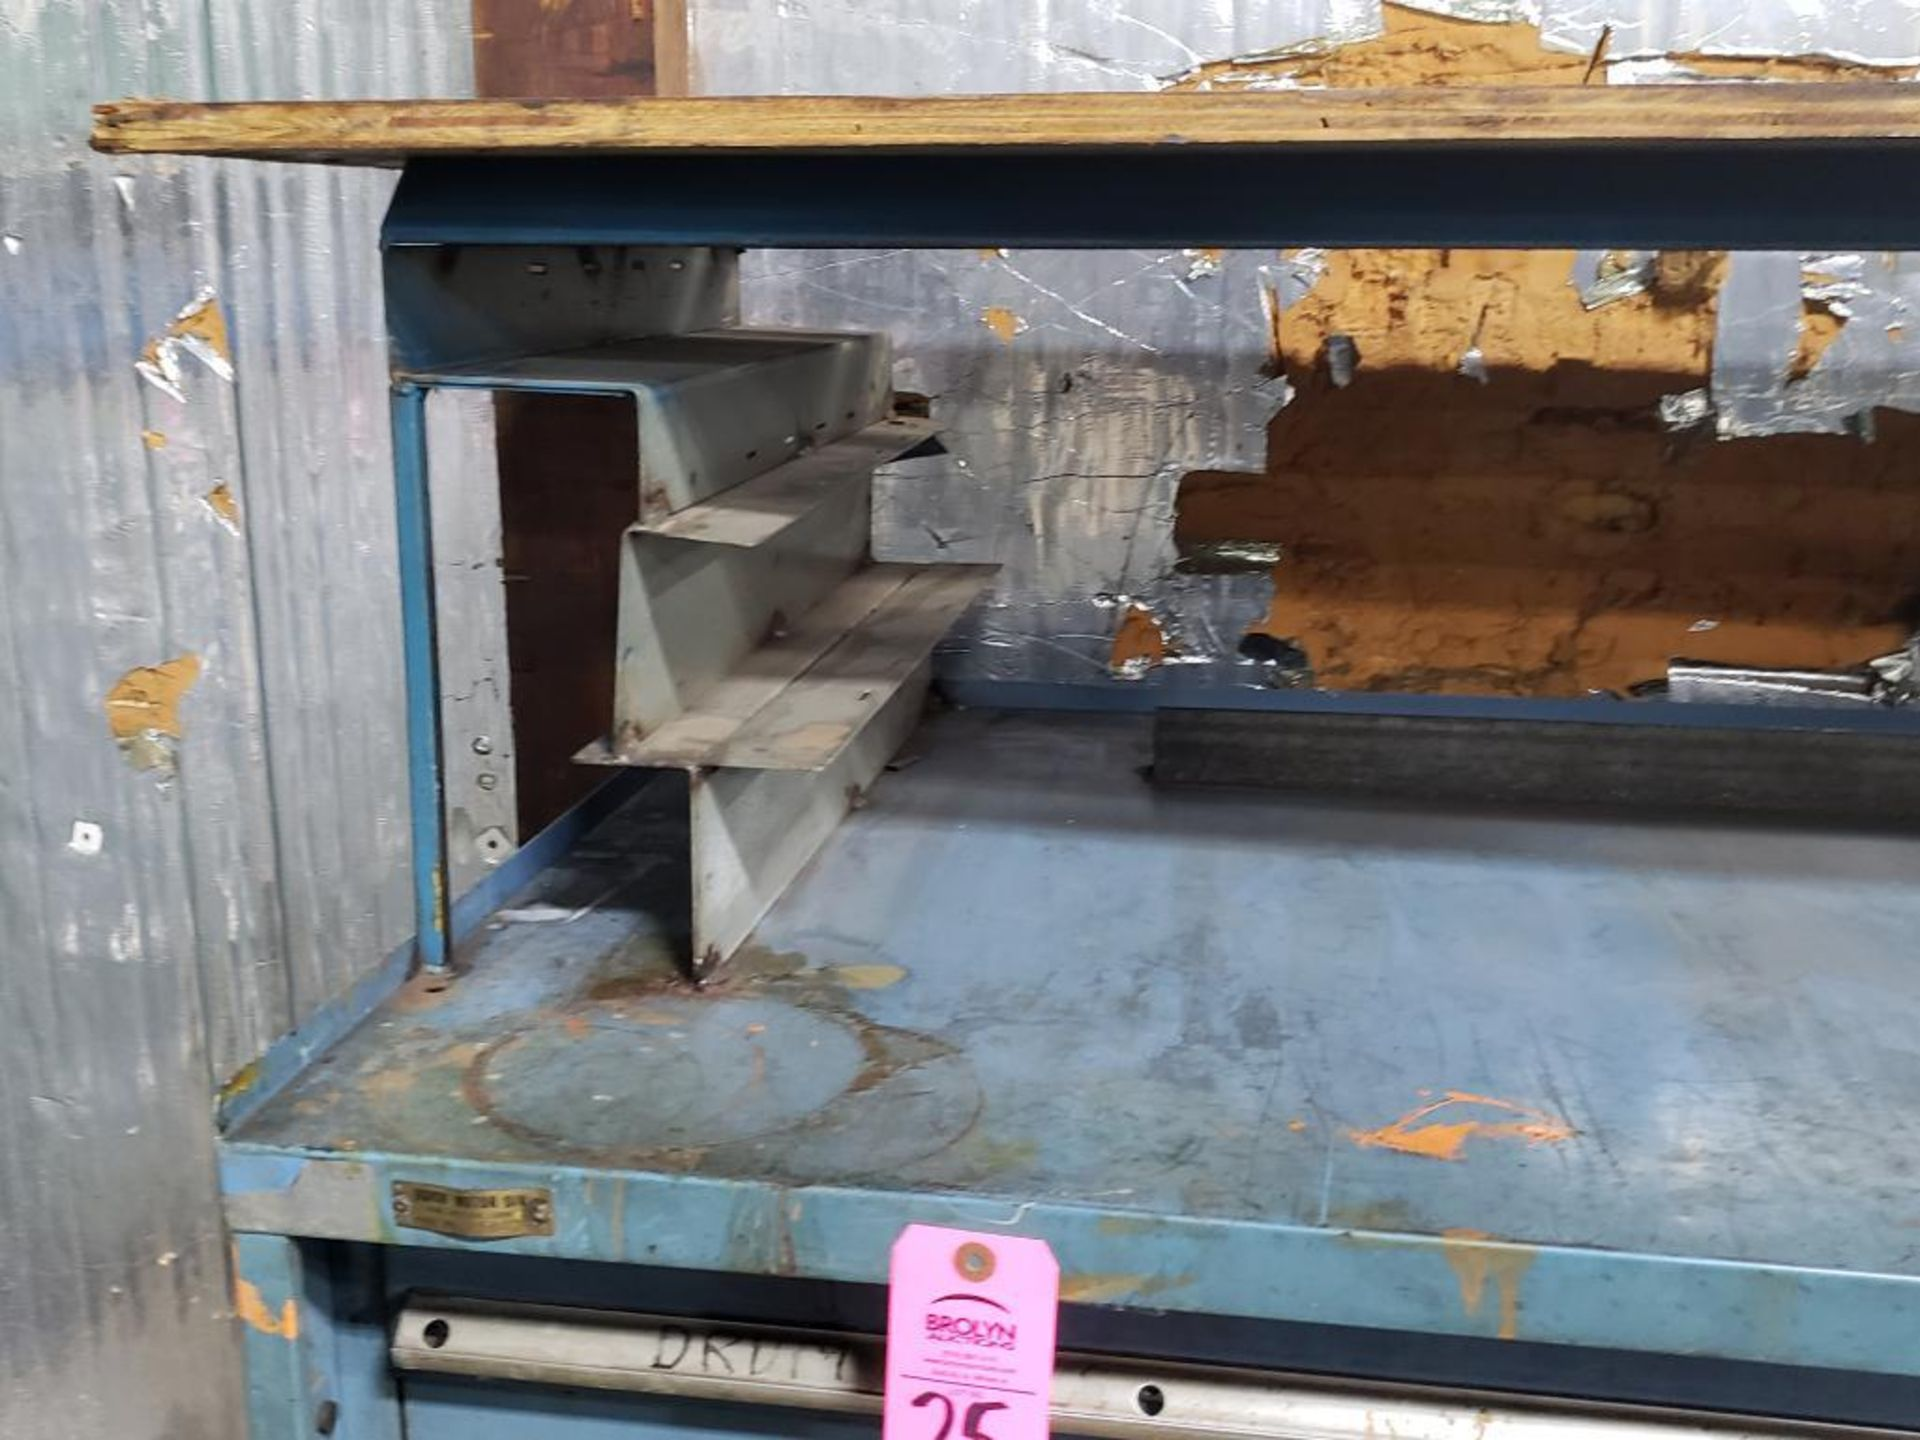 Lot 25 - 11 drawer Stanley Vidmar tool cabinet work bench. Overall dimensions 57.5Tx56.5Wx31D.